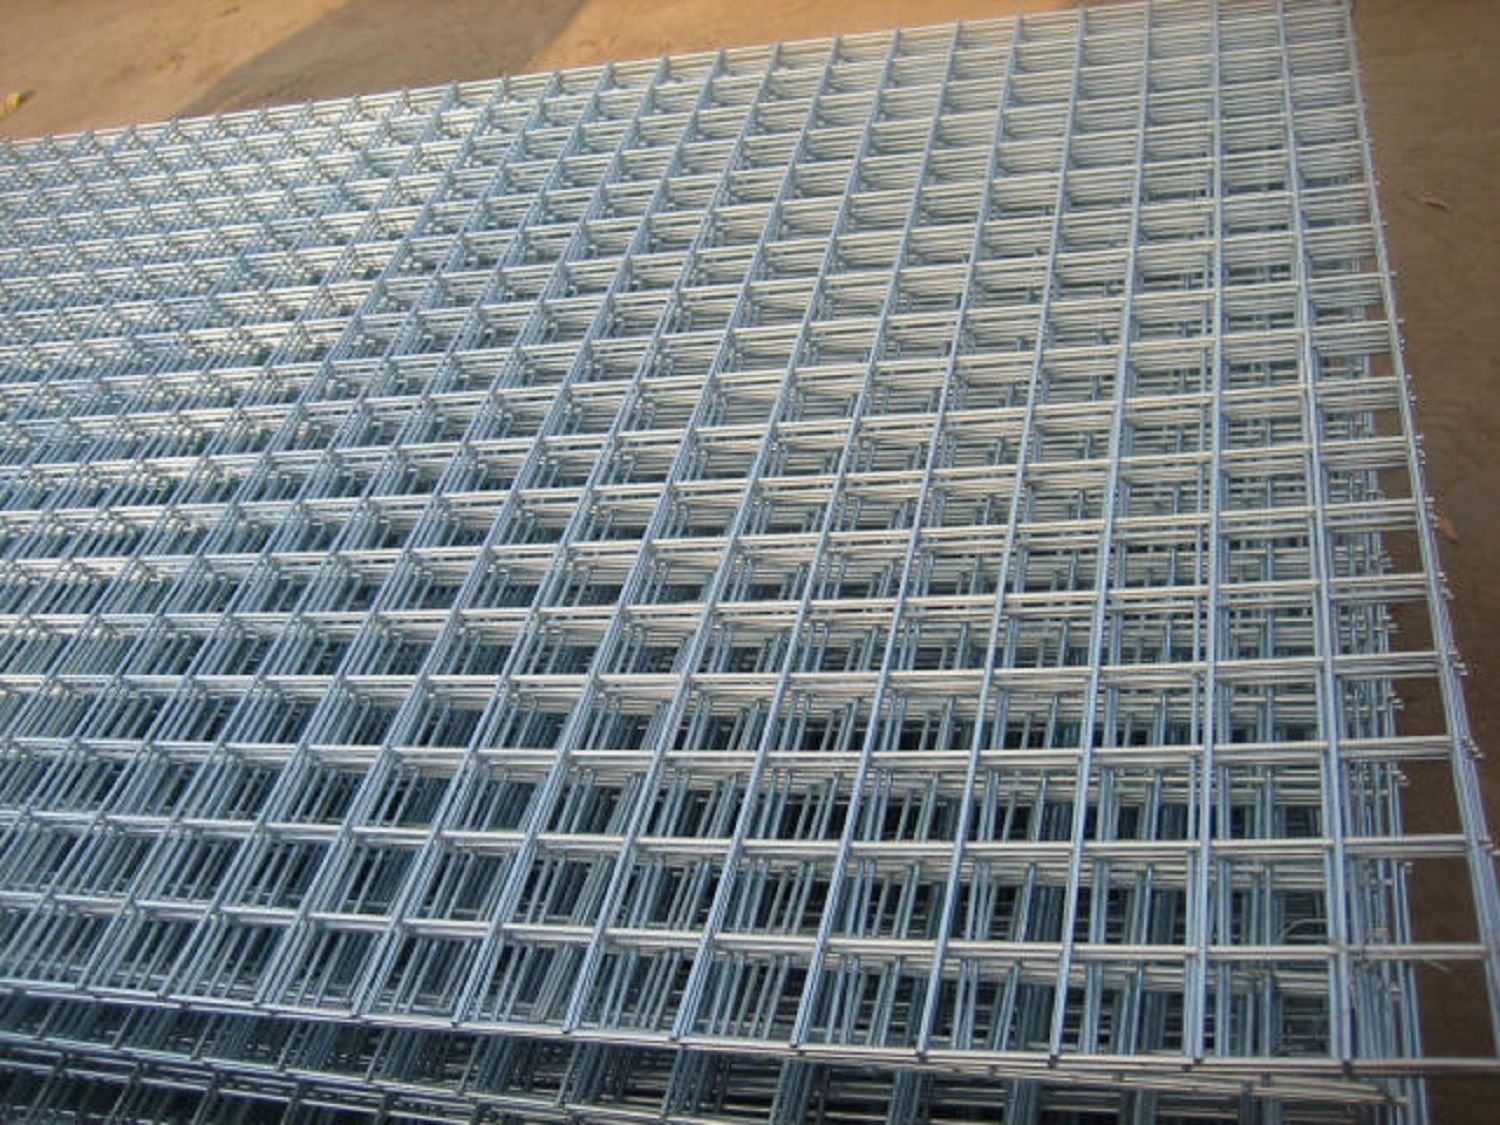 Welded Wire Mesh Panel 6ft x 3ft (1.8x0.9m), 2\